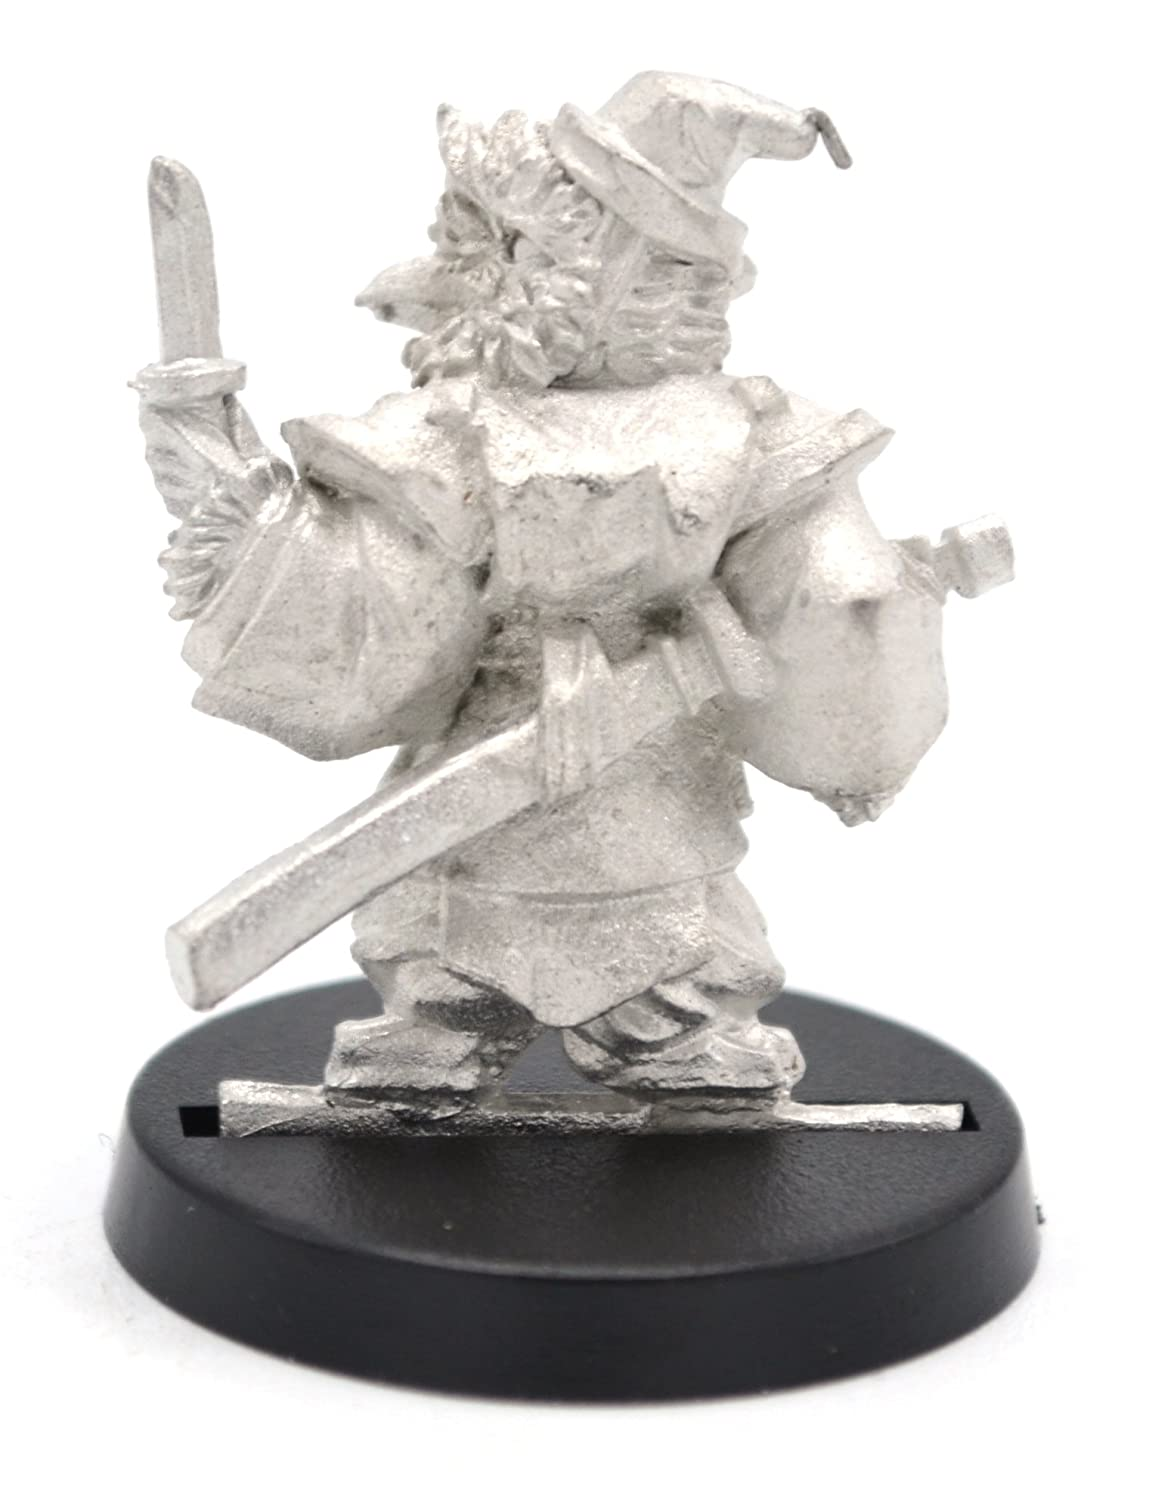 Made in US for 28mm Scale Table Top War Games Stonehaven Tengu Shogun Miniature Figure